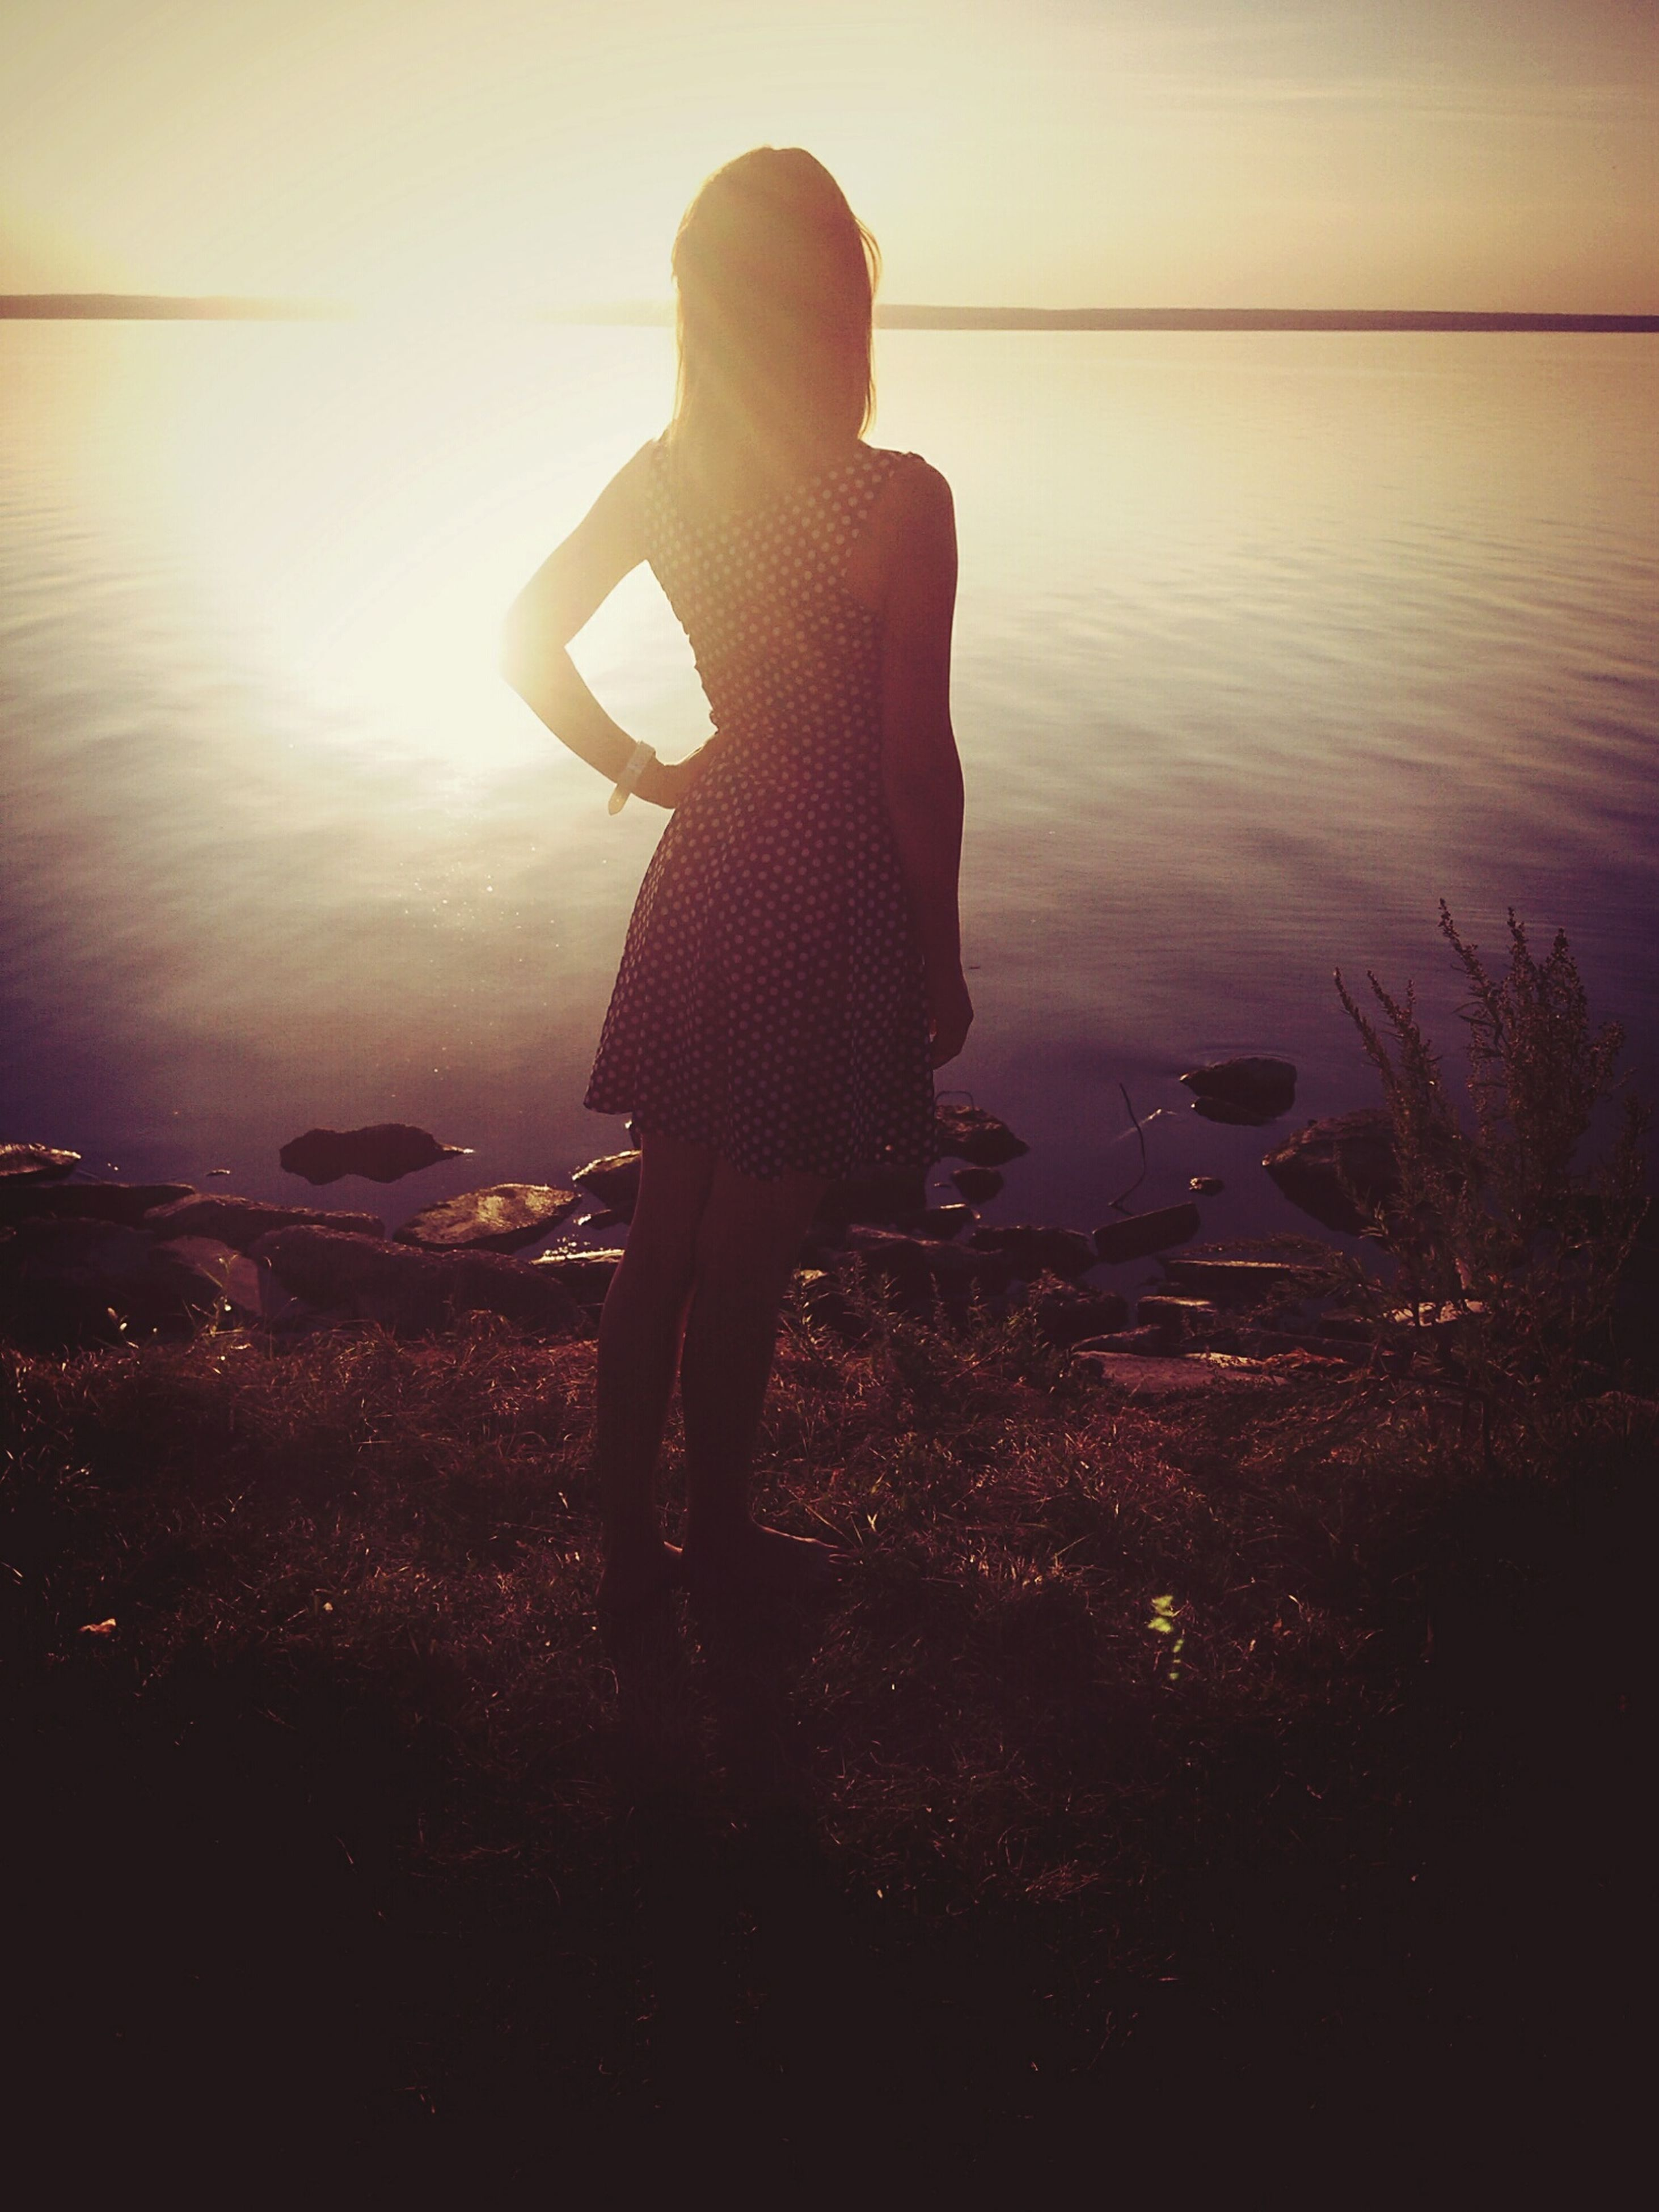 water, sunset, silhouette, standing, reflection, lake, tranquility, nature, leisure activity, tranquil scene, lifestyles, beauty in nature, sky, river, outdoors, orange color, sunlight, scenics